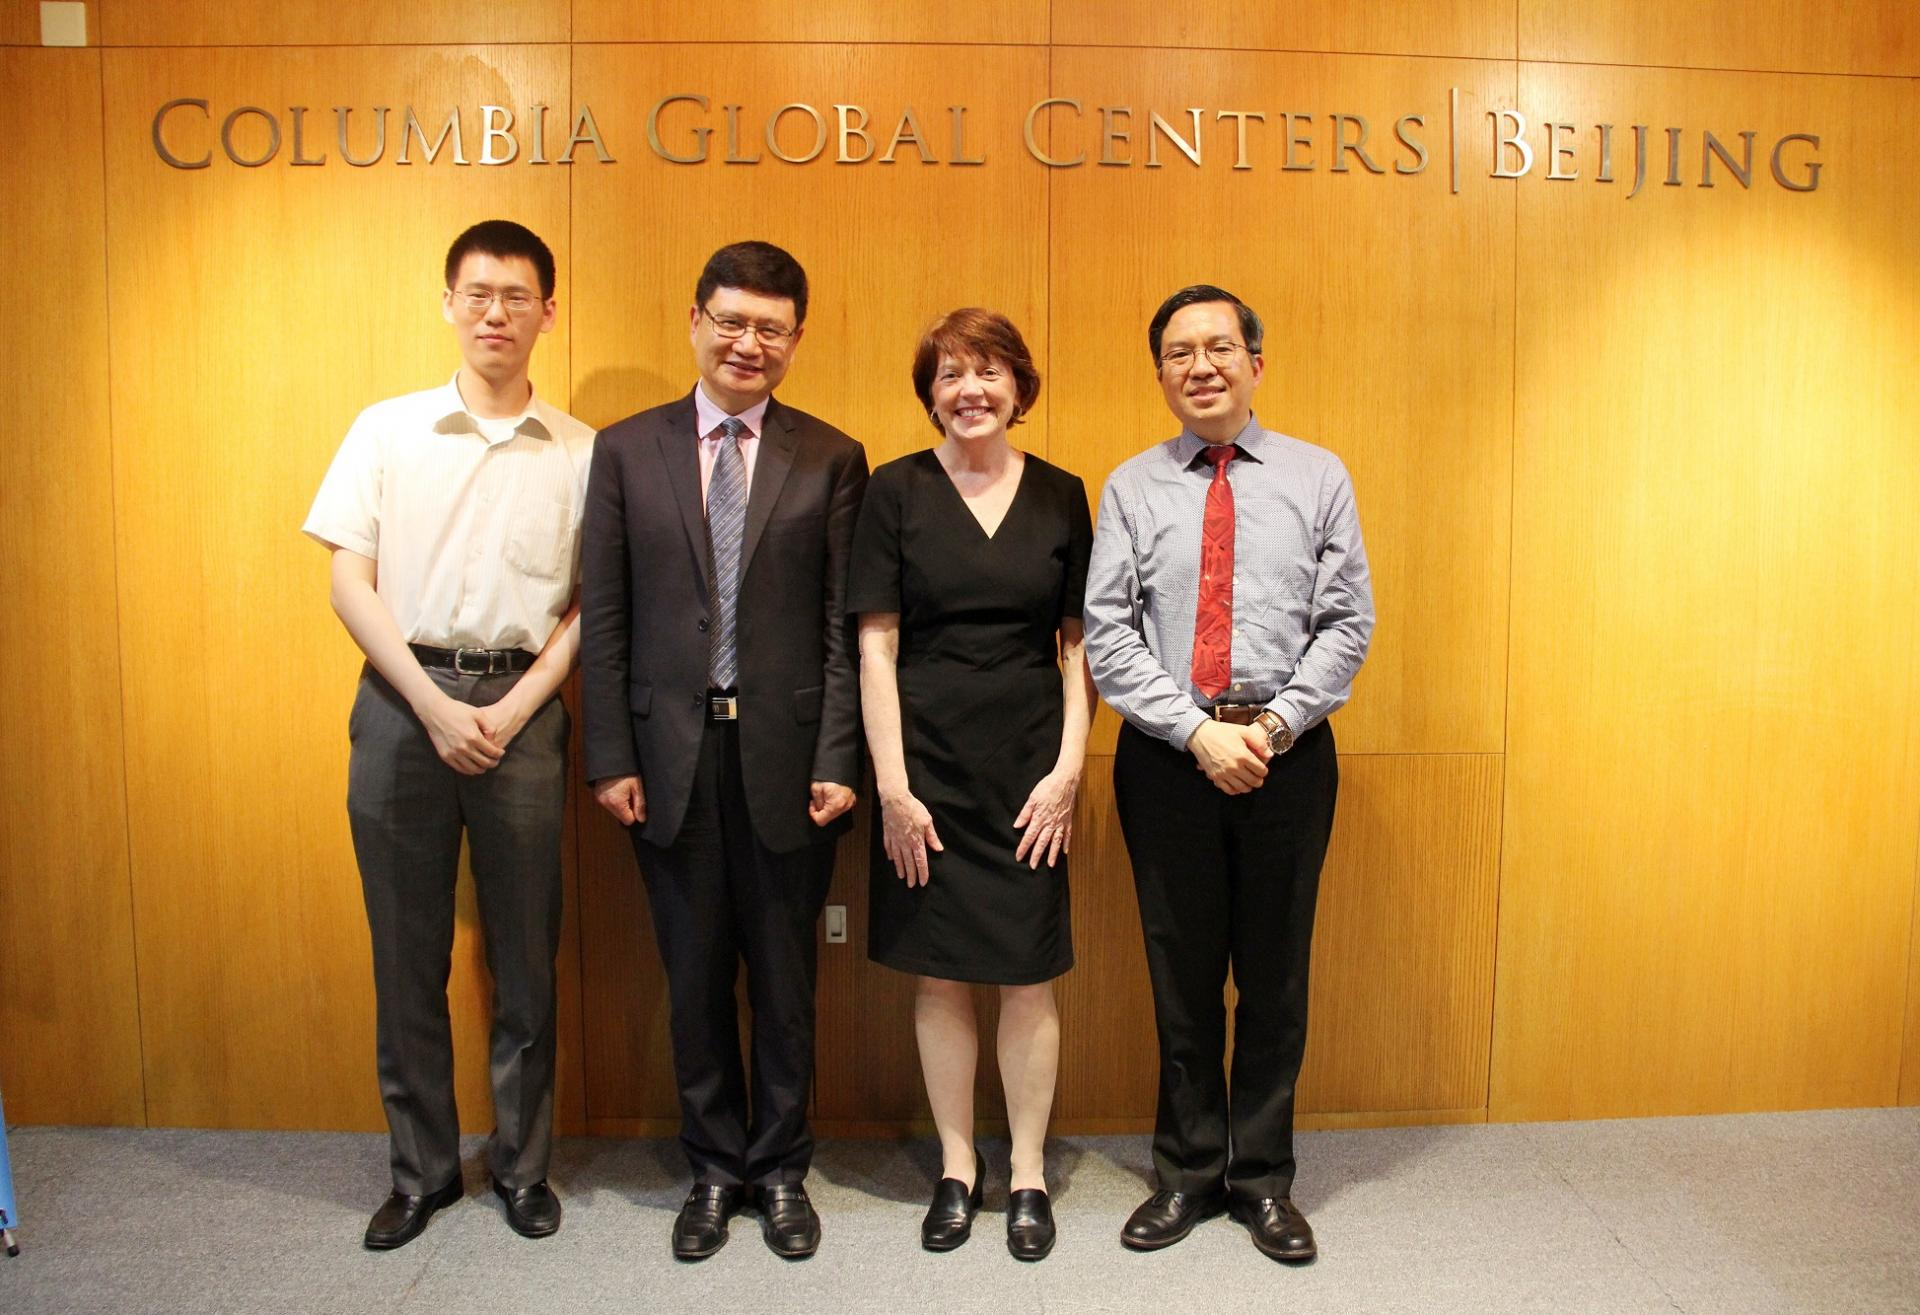 group photo of four School of Engineering and Applied Science faculty in front of the Global Centers Beijing sign